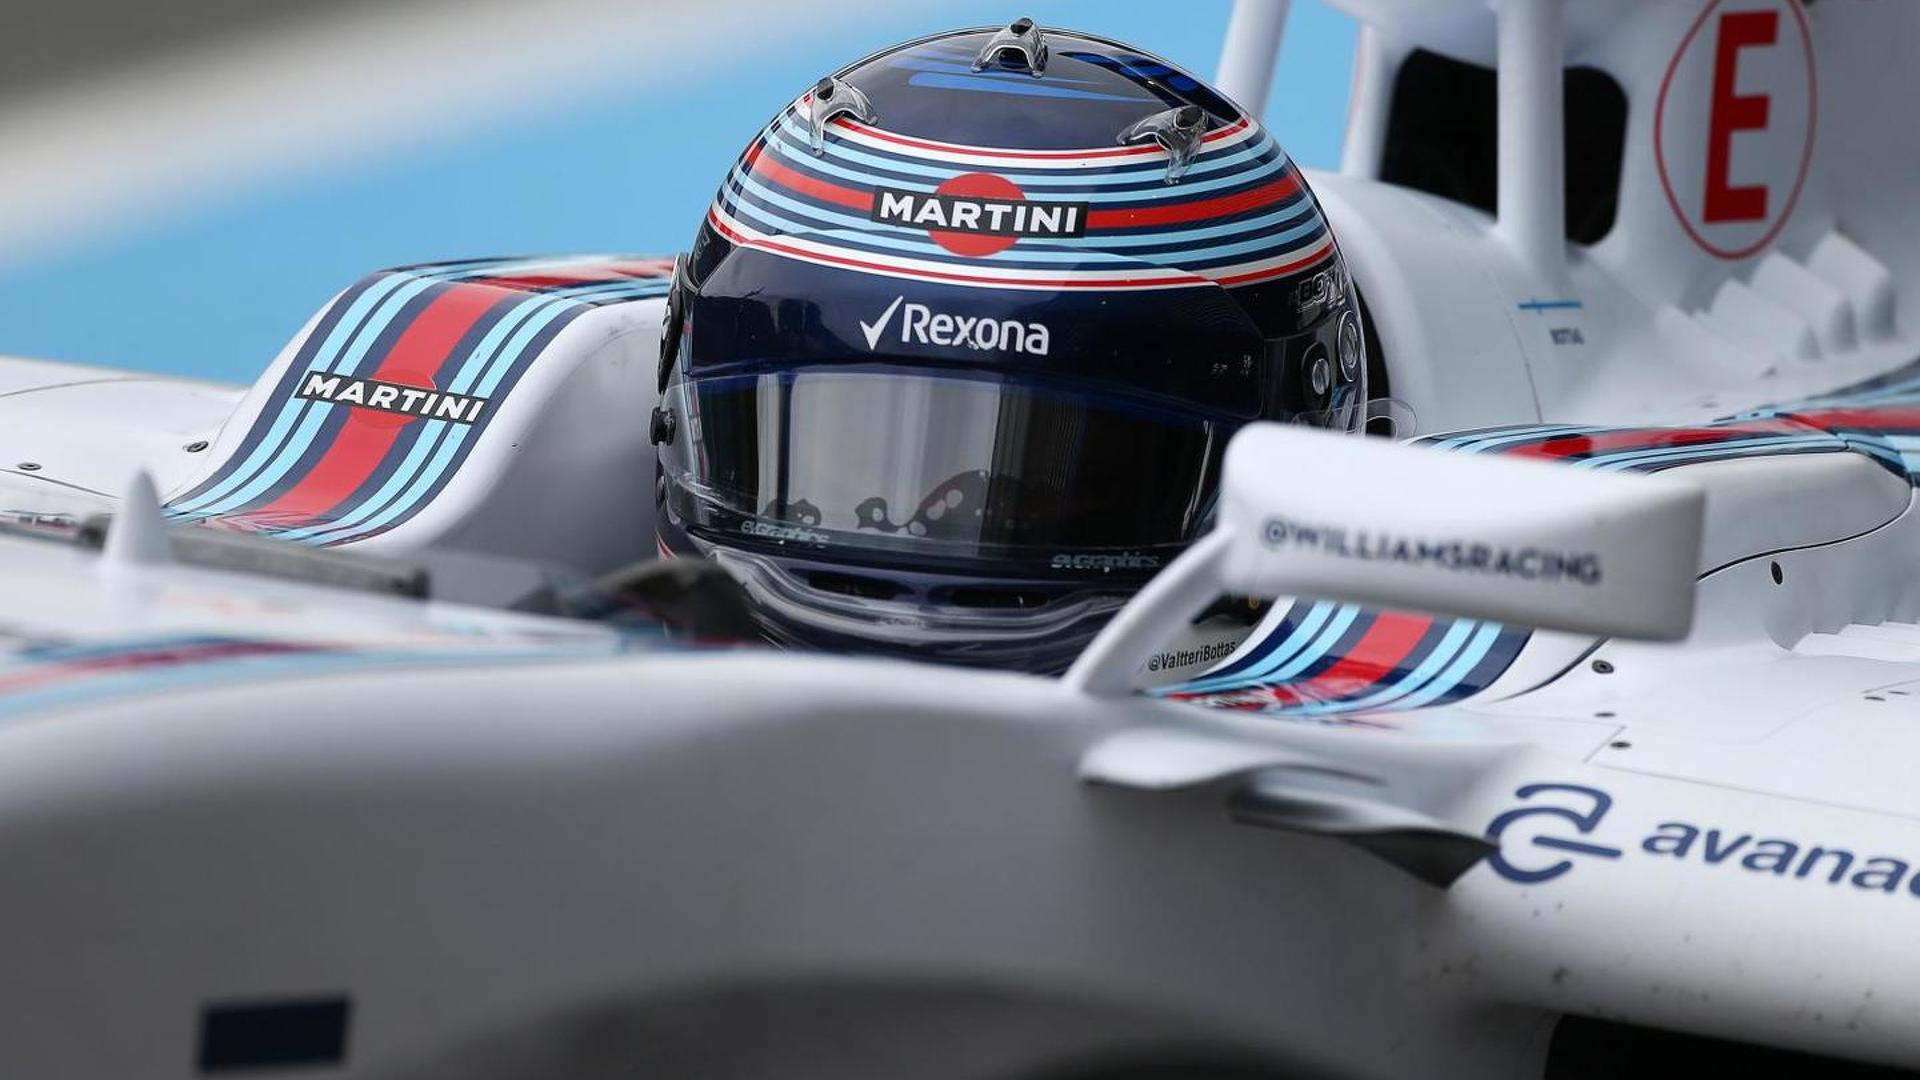 Bottas 'impatient' for Malaysia return - manager